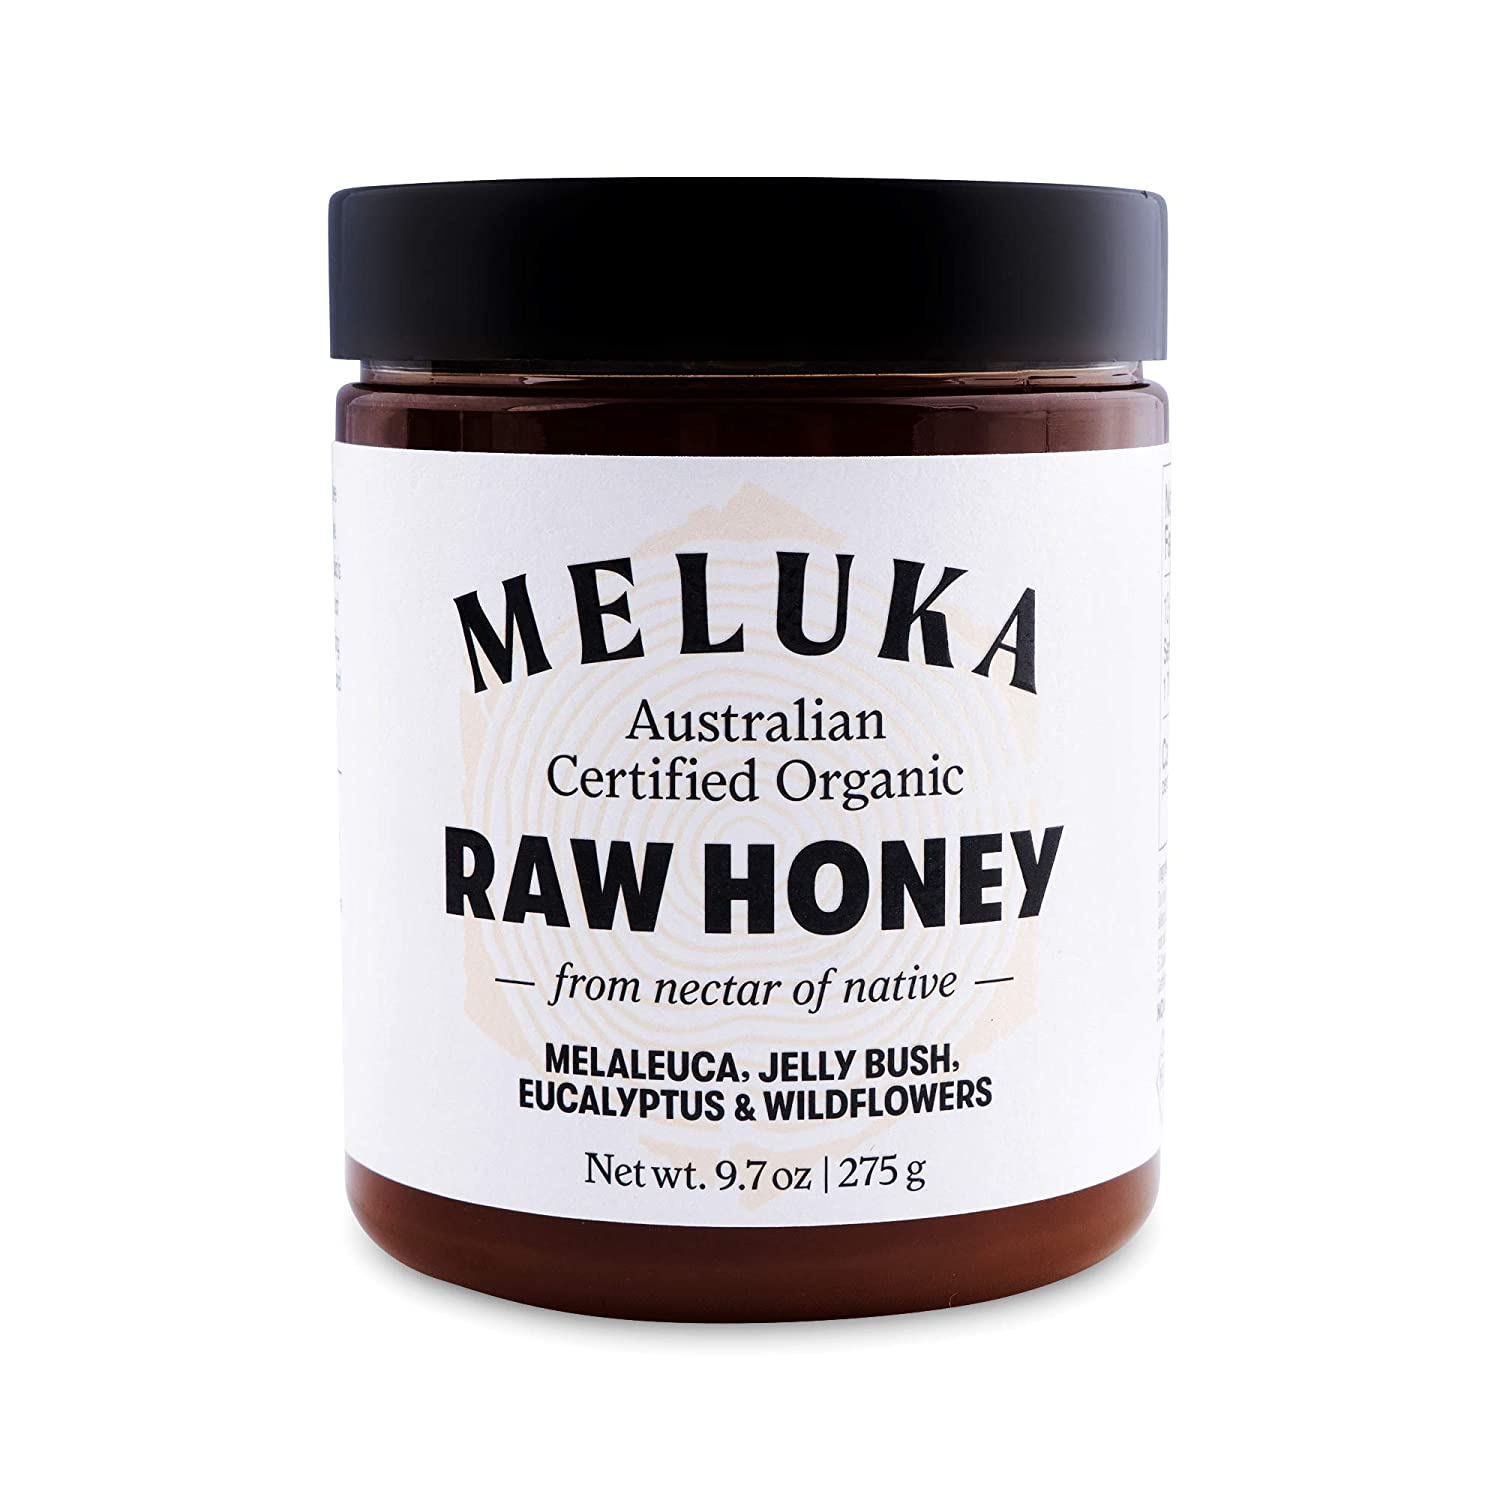 Where to buy raw organic honey? Best raw honey brand 2021